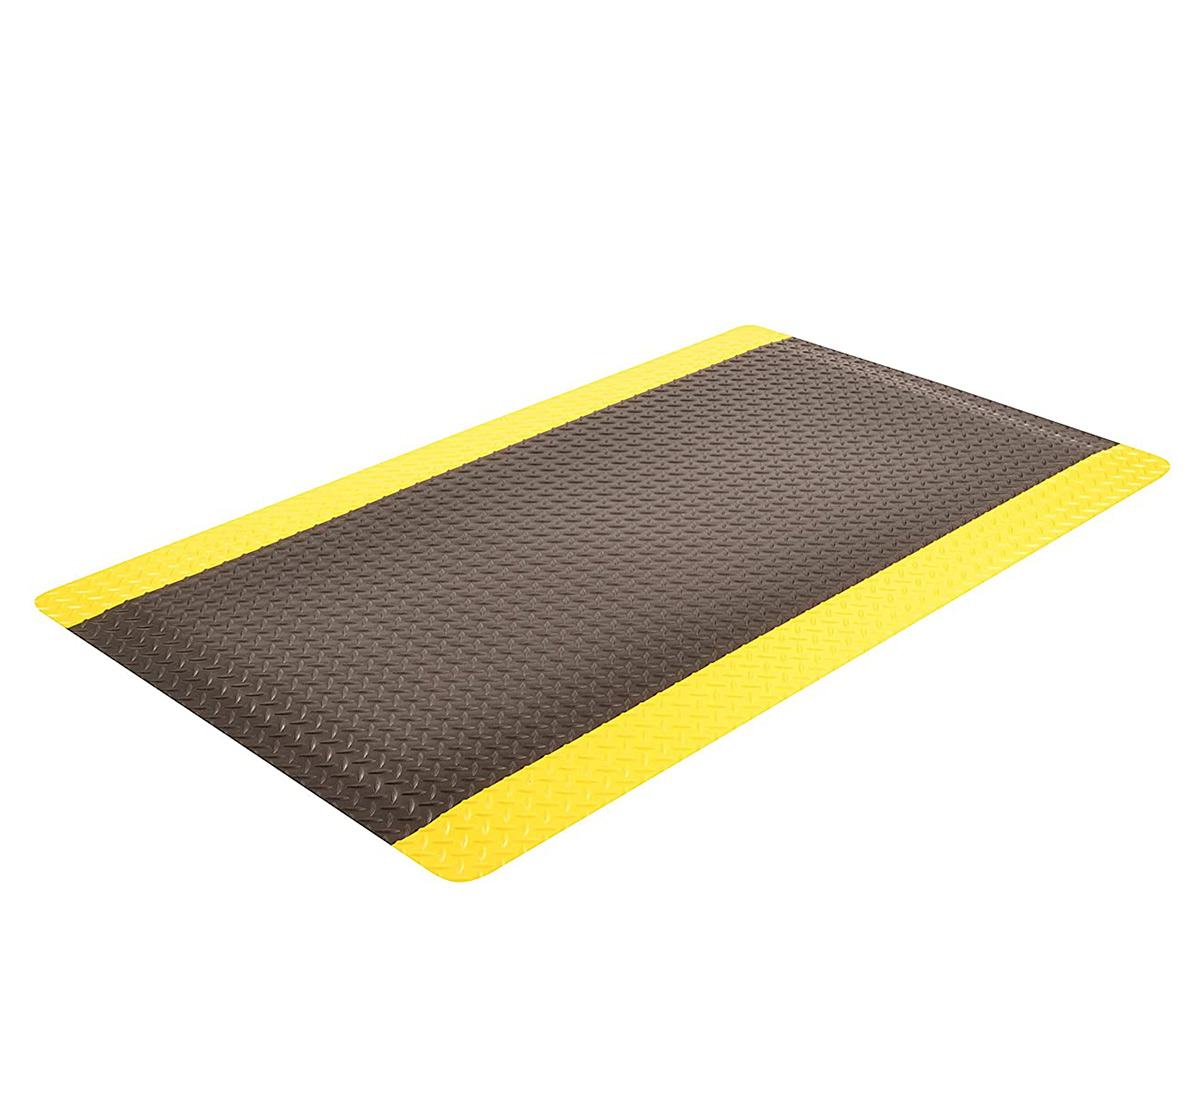 Anti-fatigue industrial matting